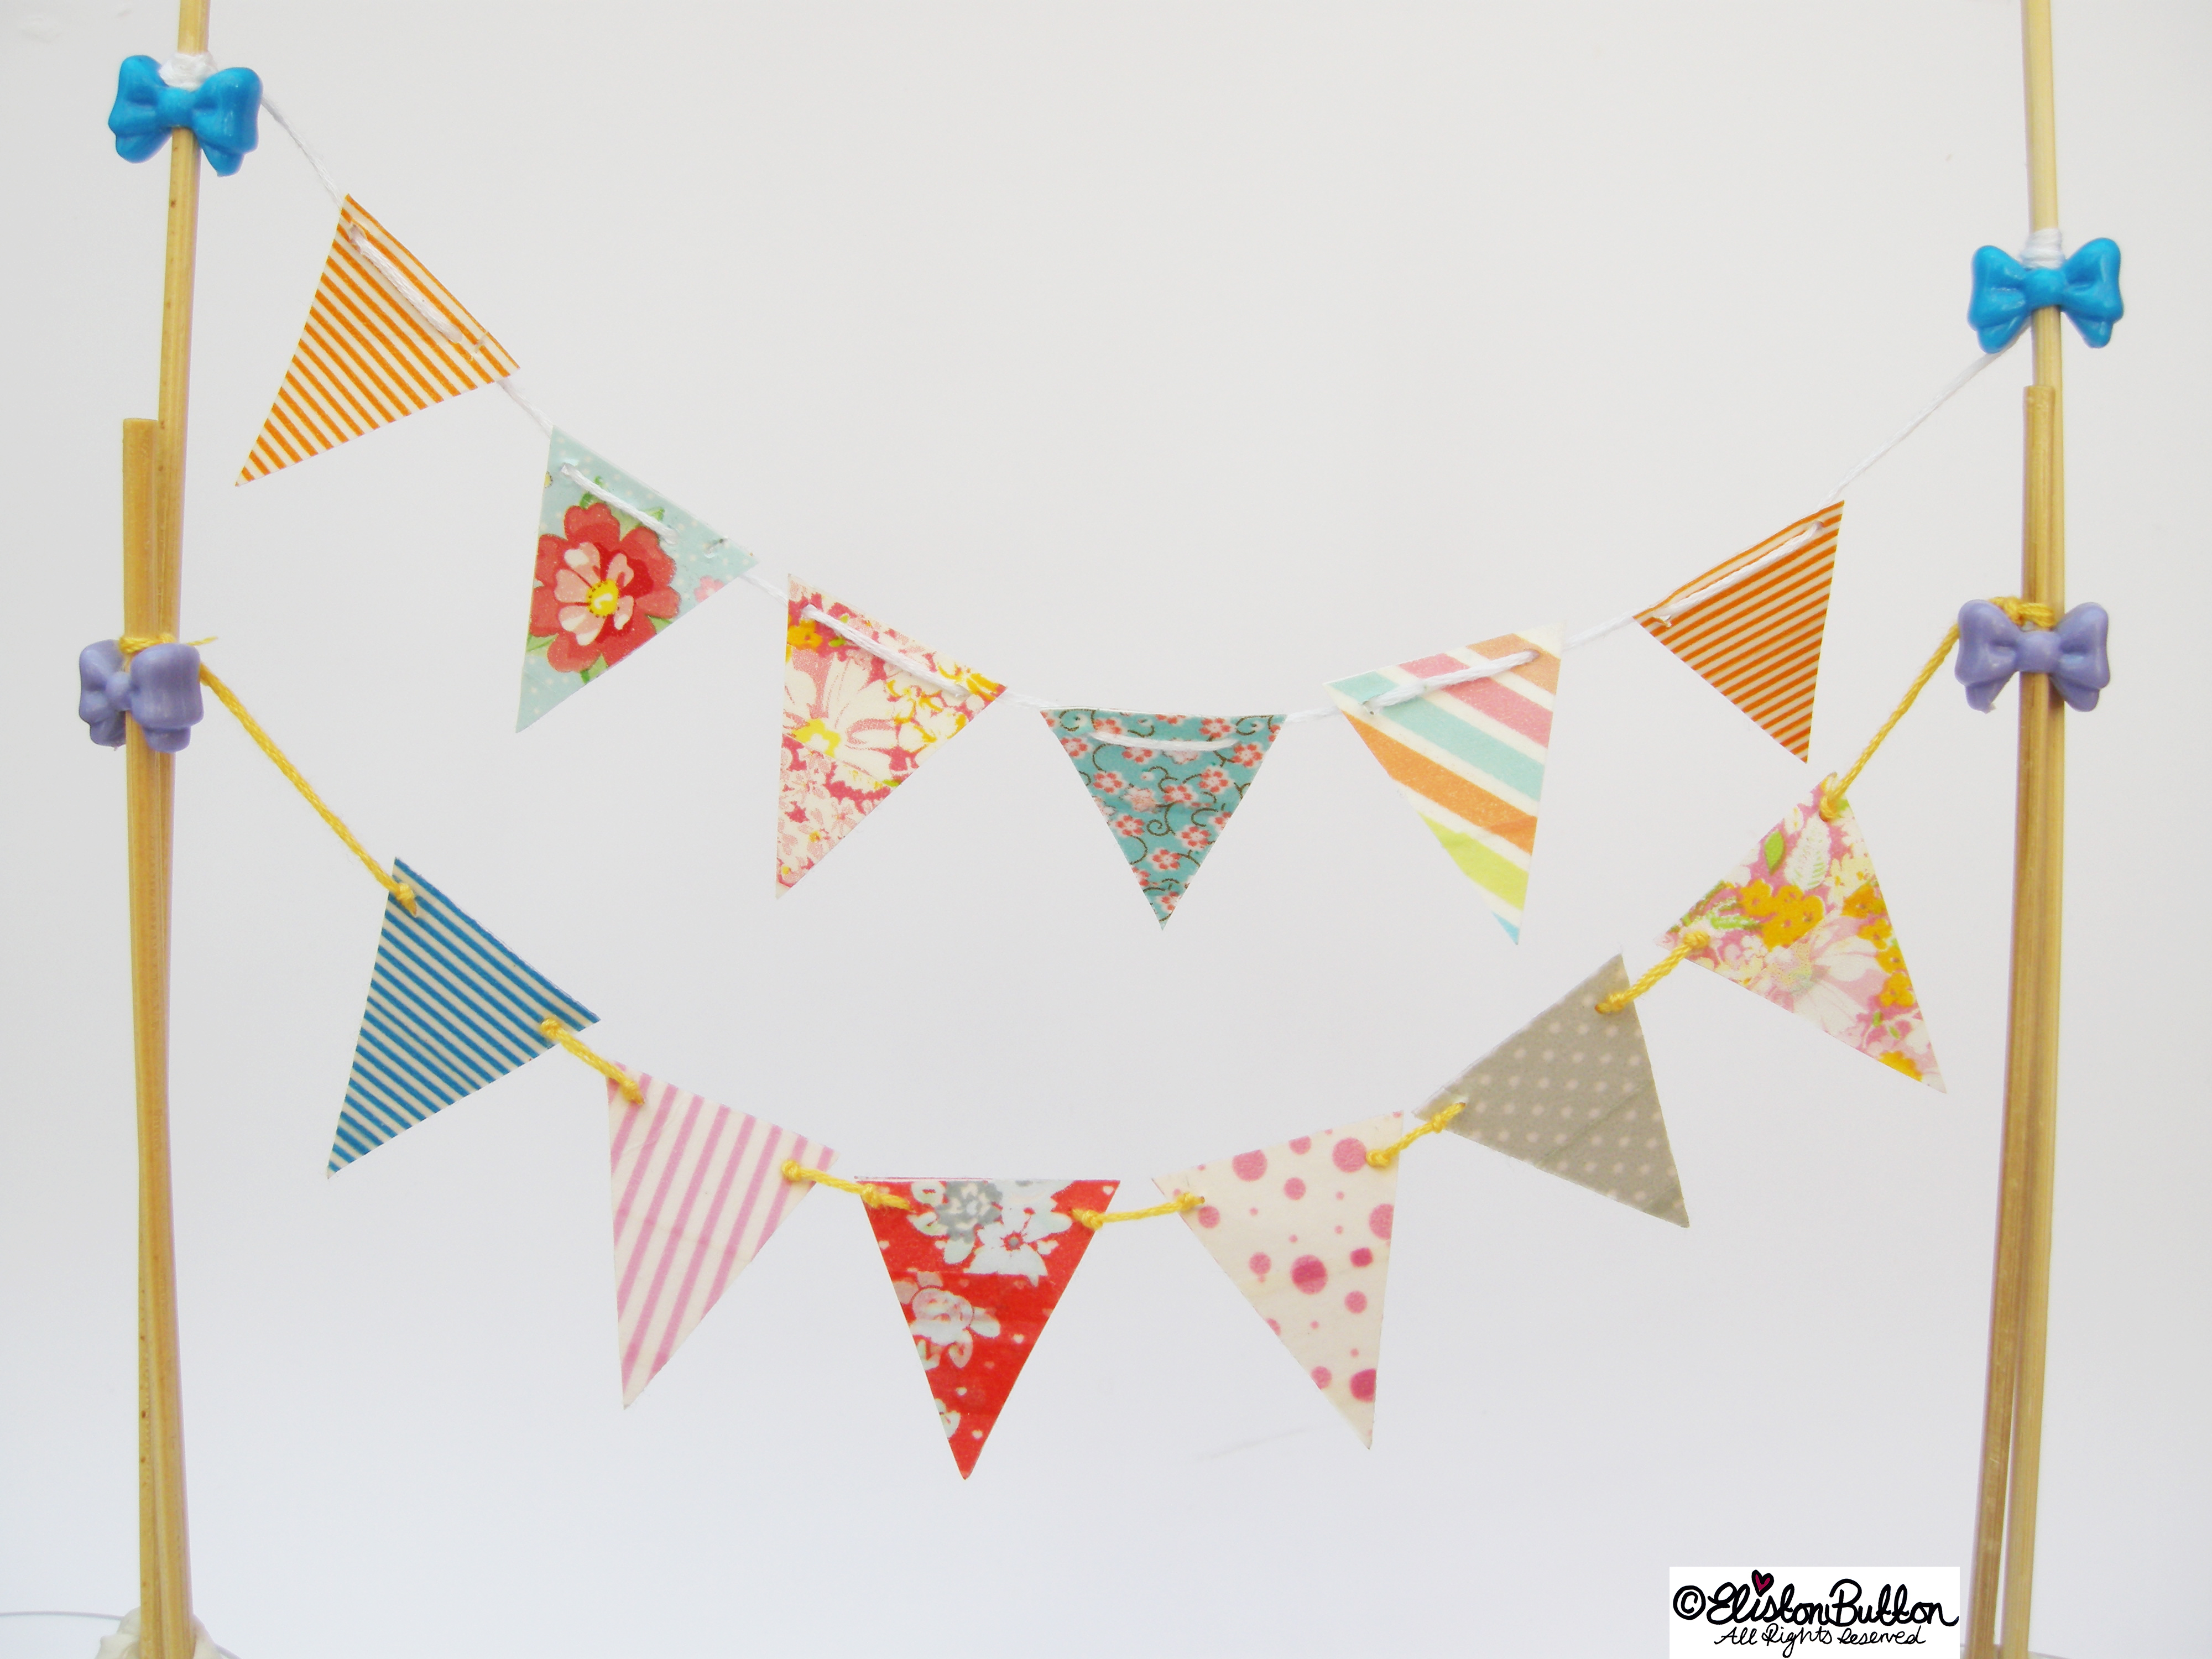 Mini Washi Tape Bunting - Patterns and Colours - Washi Tape Bunting Tutorial at www.elistonbutton.com - Eliston Button - That Crafty Kid – Art, Design, Craft & Adventure.